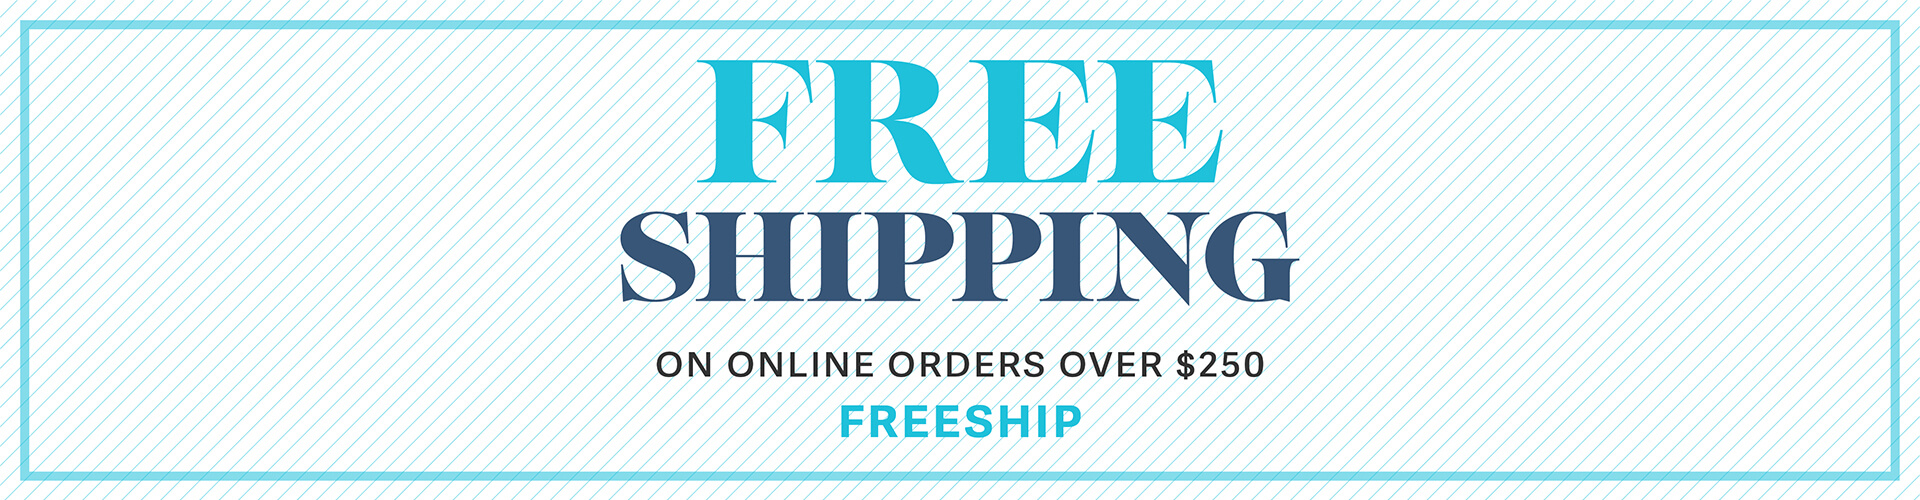 Free Shipping on Order over $250